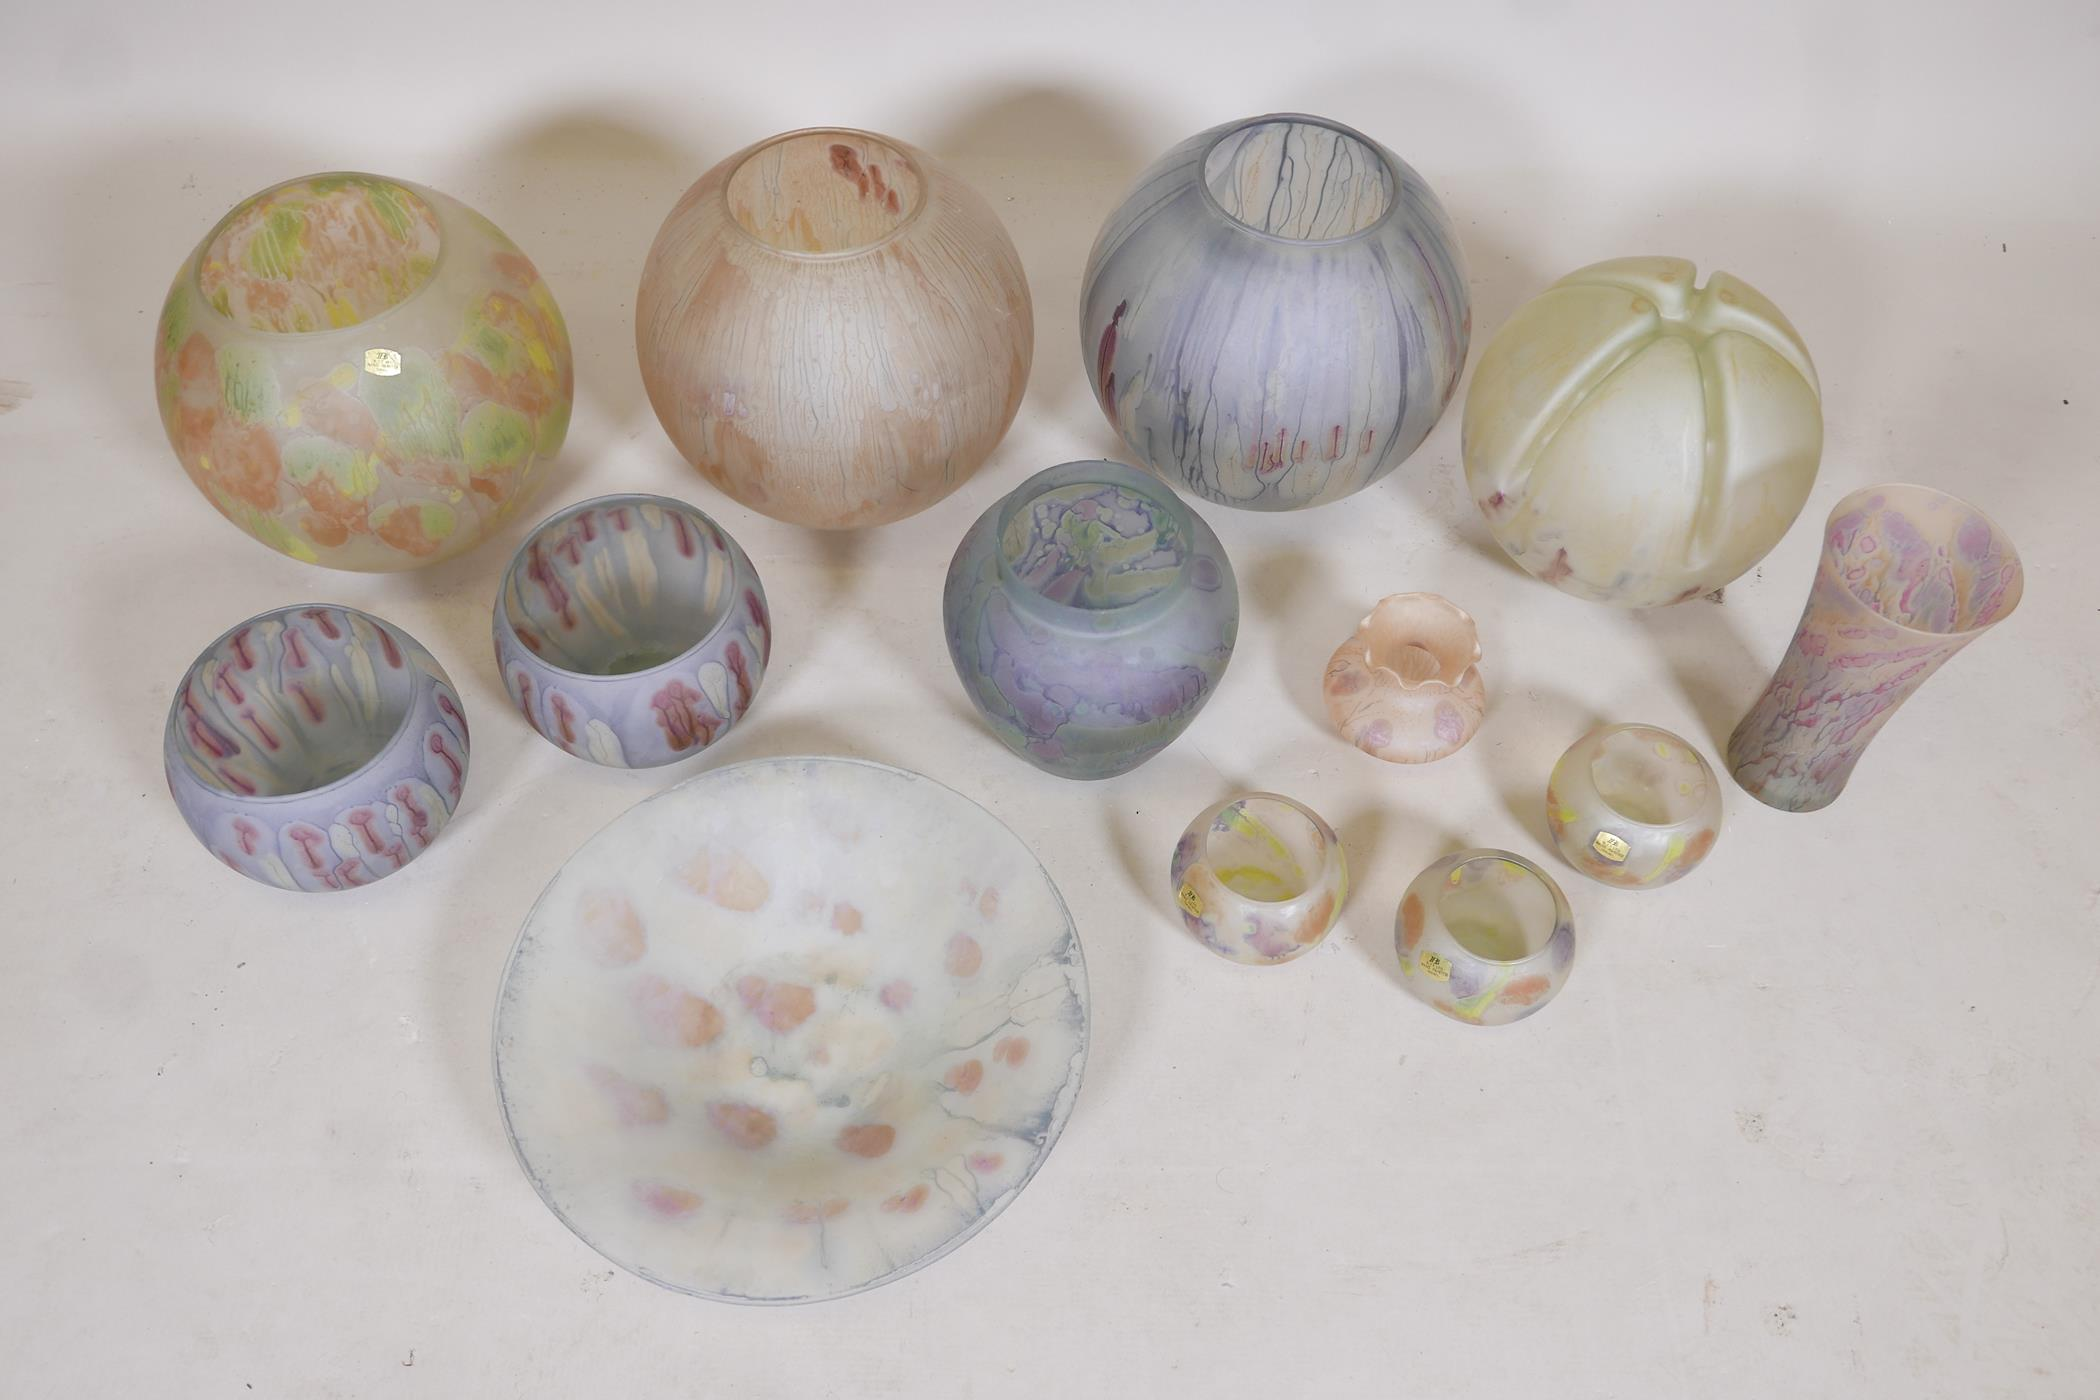 A quantity of Israeli hand painted studio glass to include lamp shades, vases, bowls and dishes, - Image 2 of 8